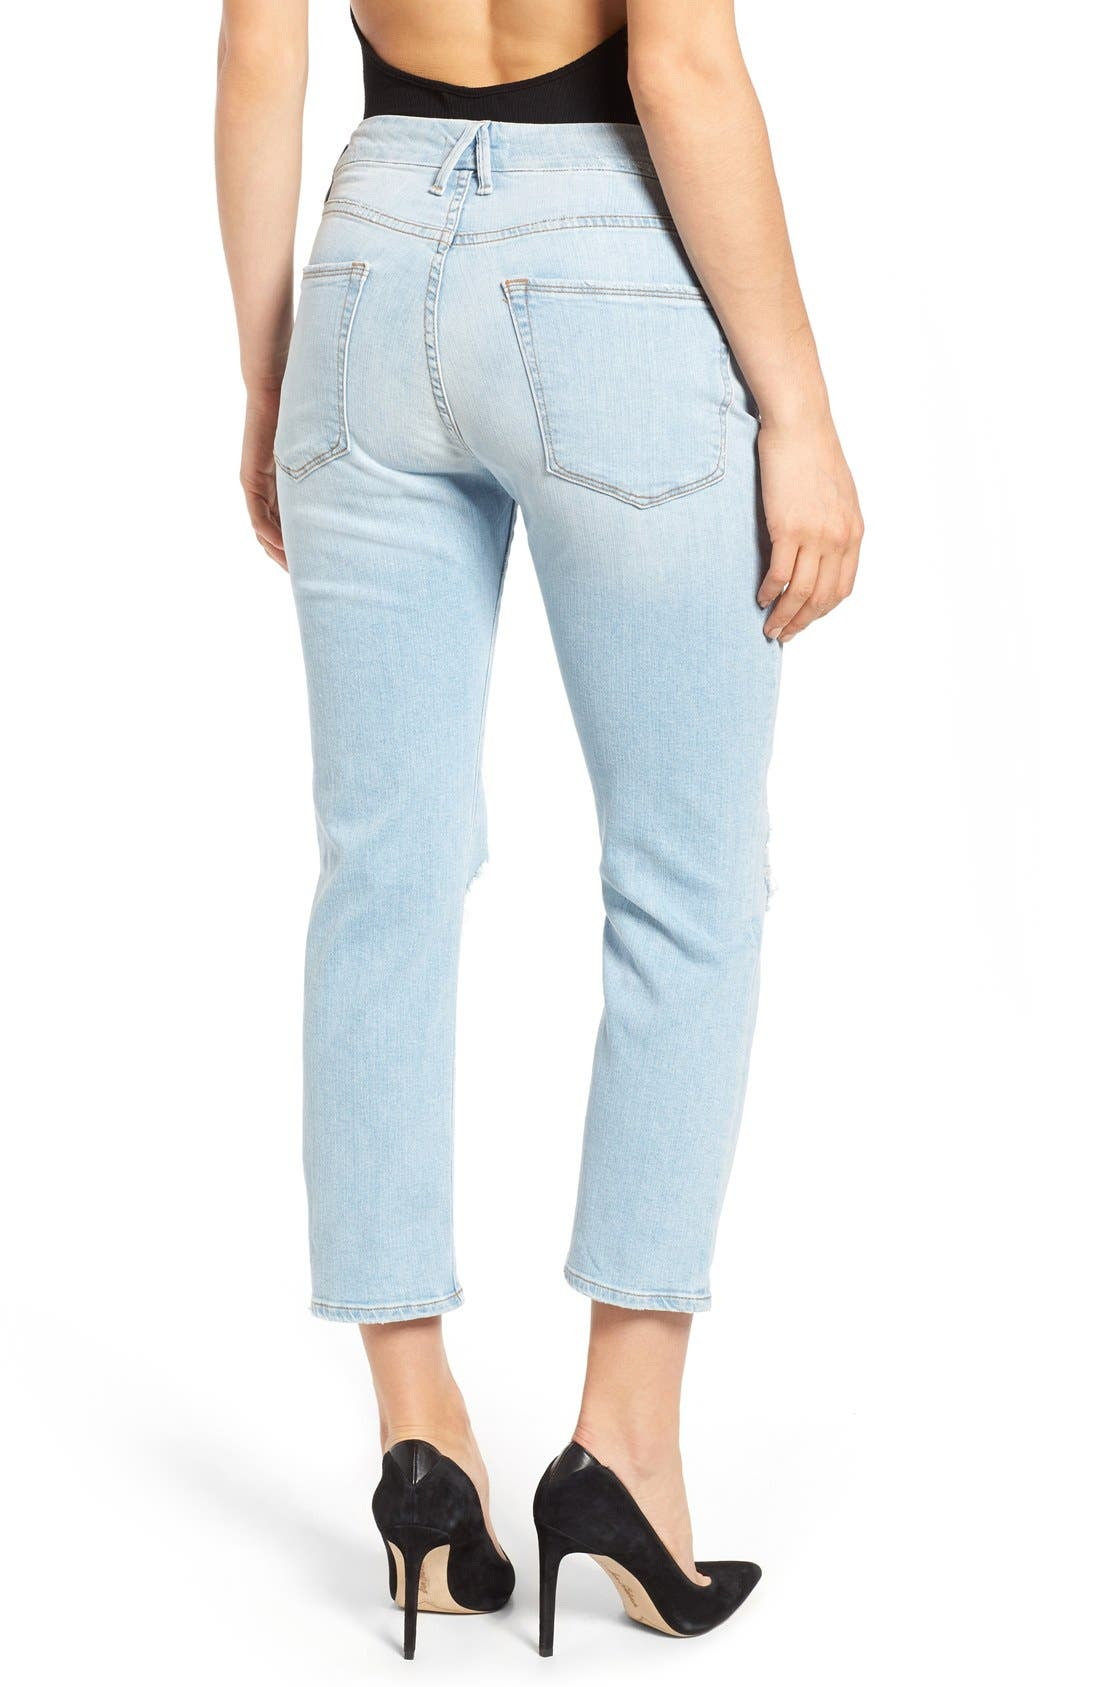 Good Cuts High Rise Boyfriend Jeans,                             Alternate thumbnail 2, color,                             401